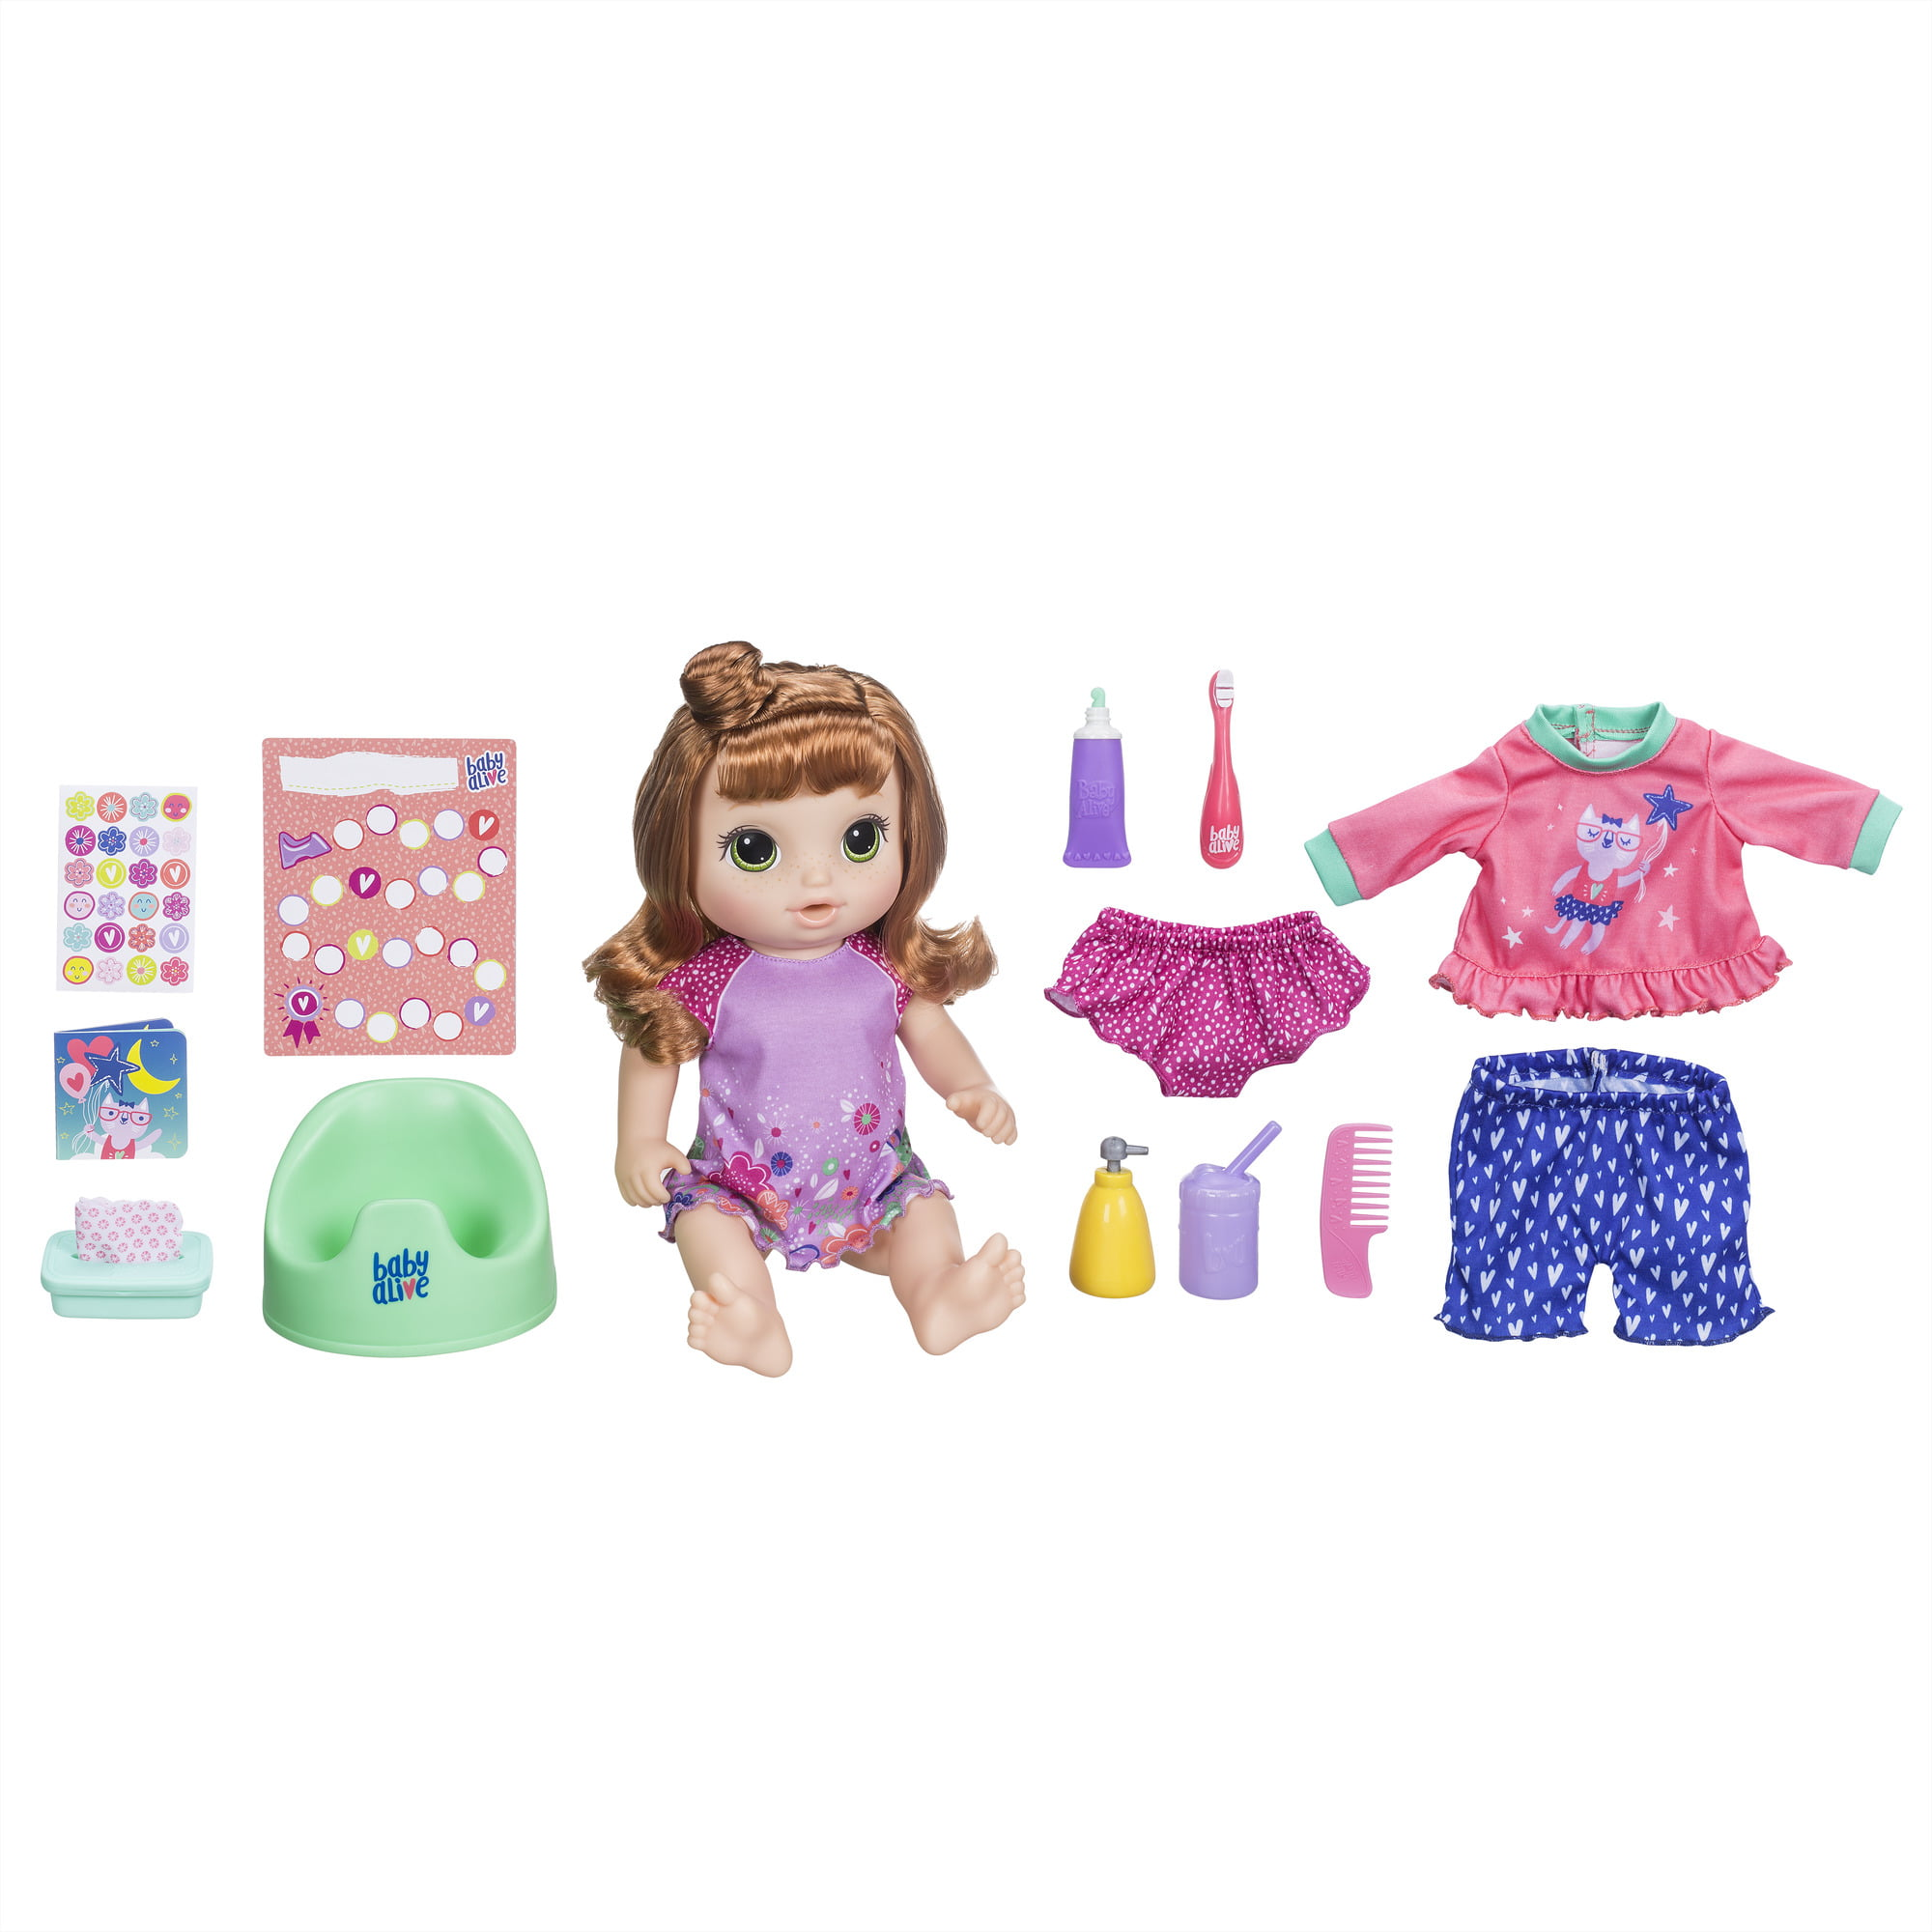 Baby Alive Potty Dance Baby Exclusive Value Pack (Red Curly Hair)